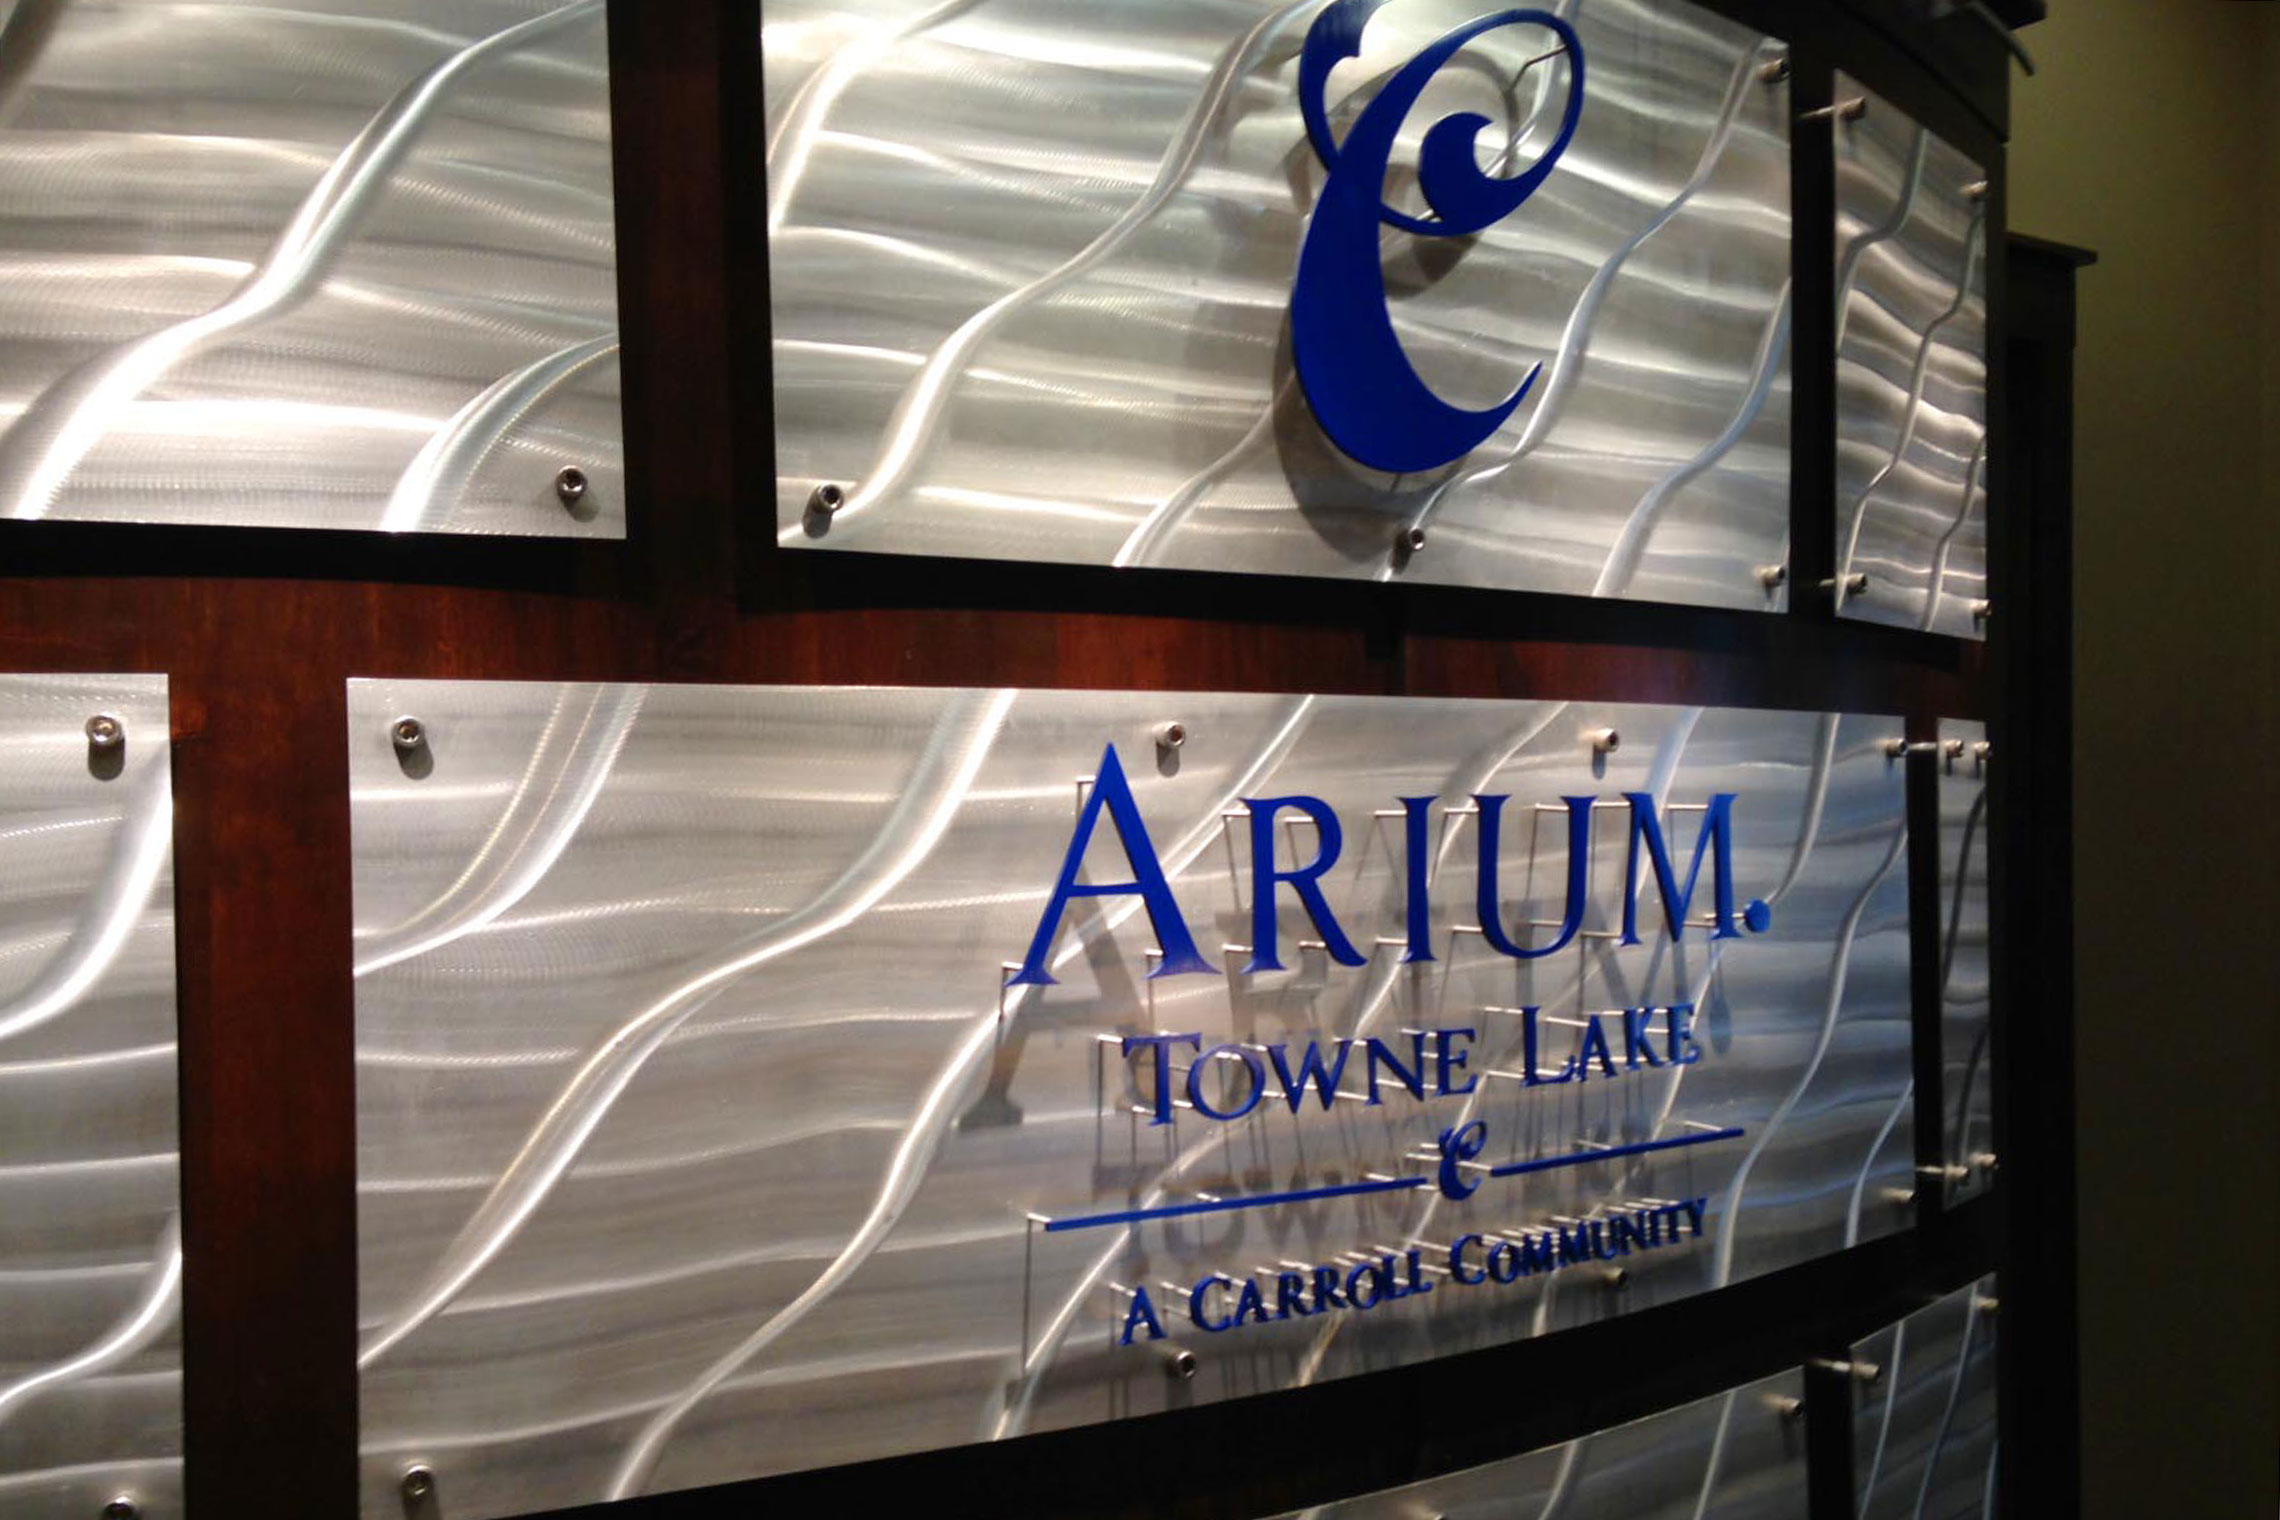 Arium Towne Lake Dimensional Letters in Leasing Office